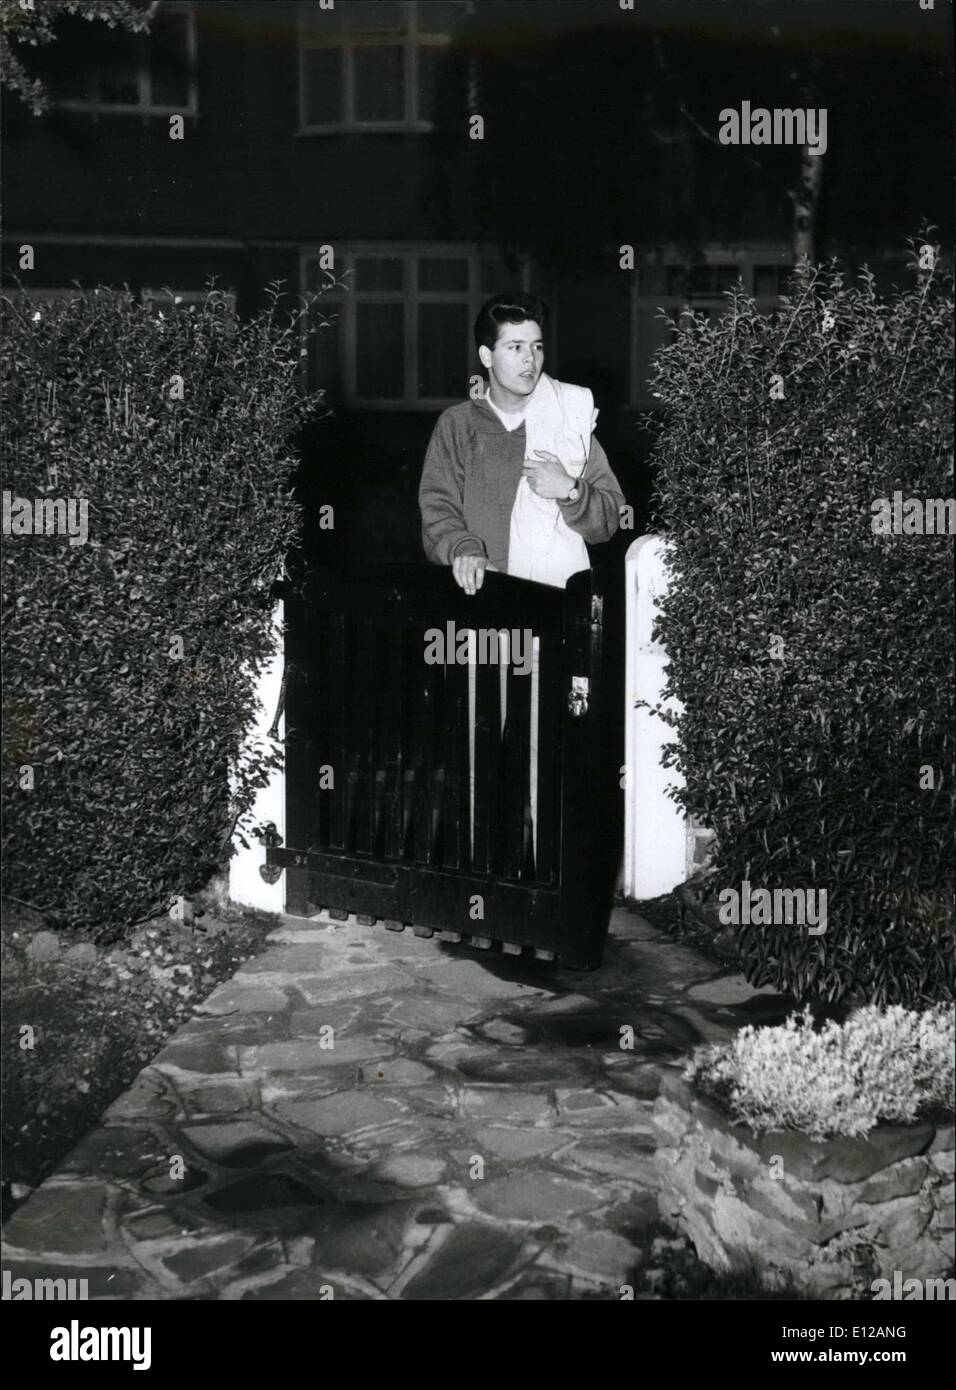 Dec. 09, 2011 - Cliff Arriving home in the small hours of the morning after a show. - Stock Image